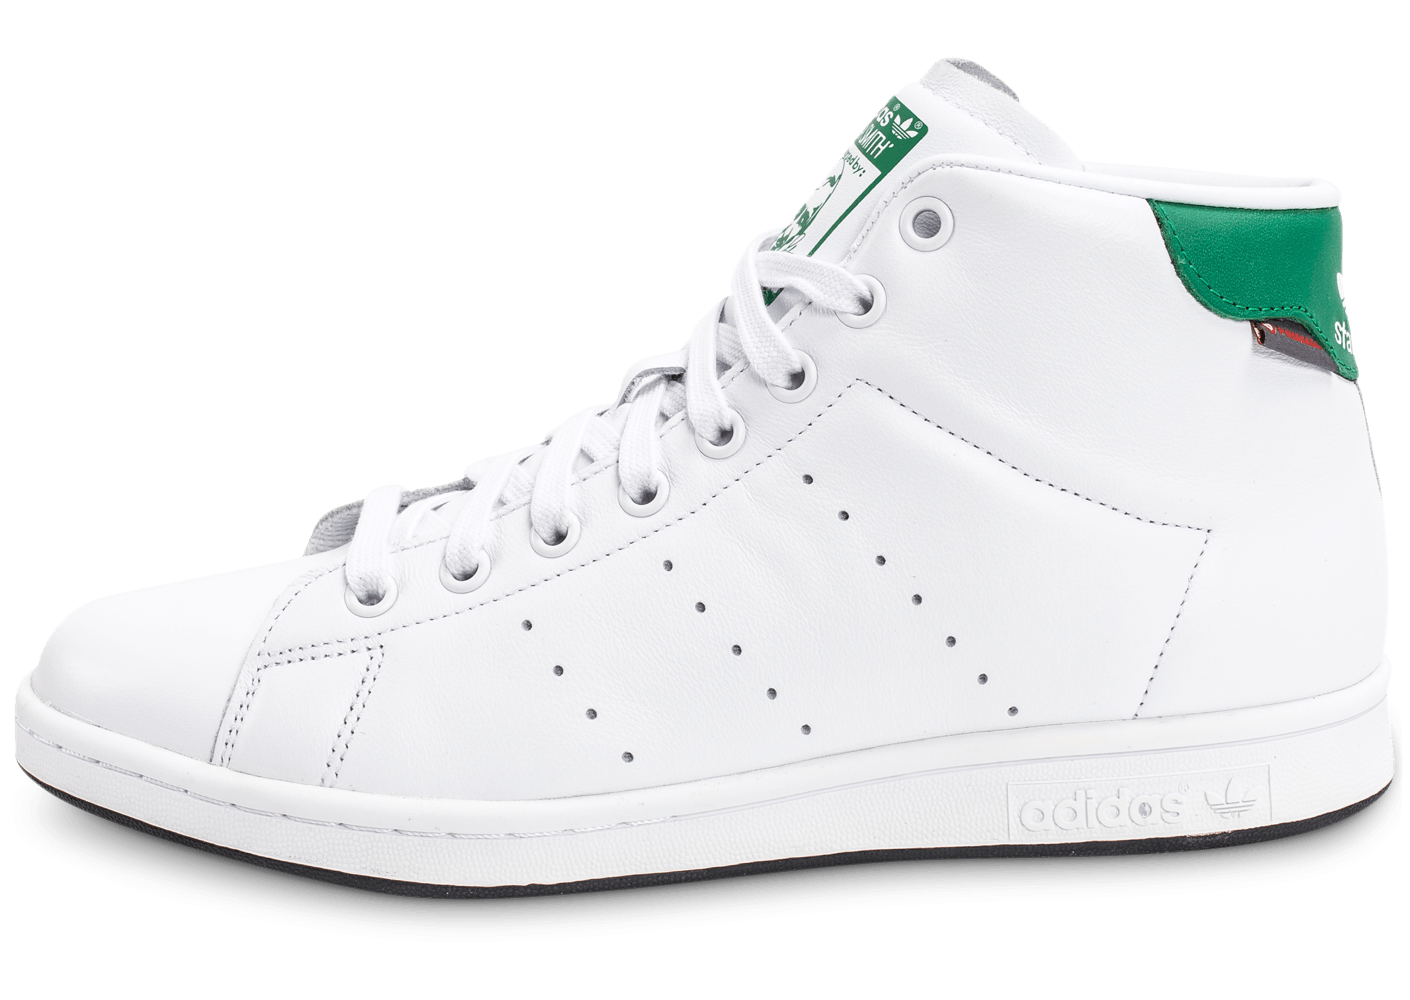 soldes adidas stan smith winter blanche chaussures homme chausport. Black Bedroom Furniture Sets. Home Design Ideas